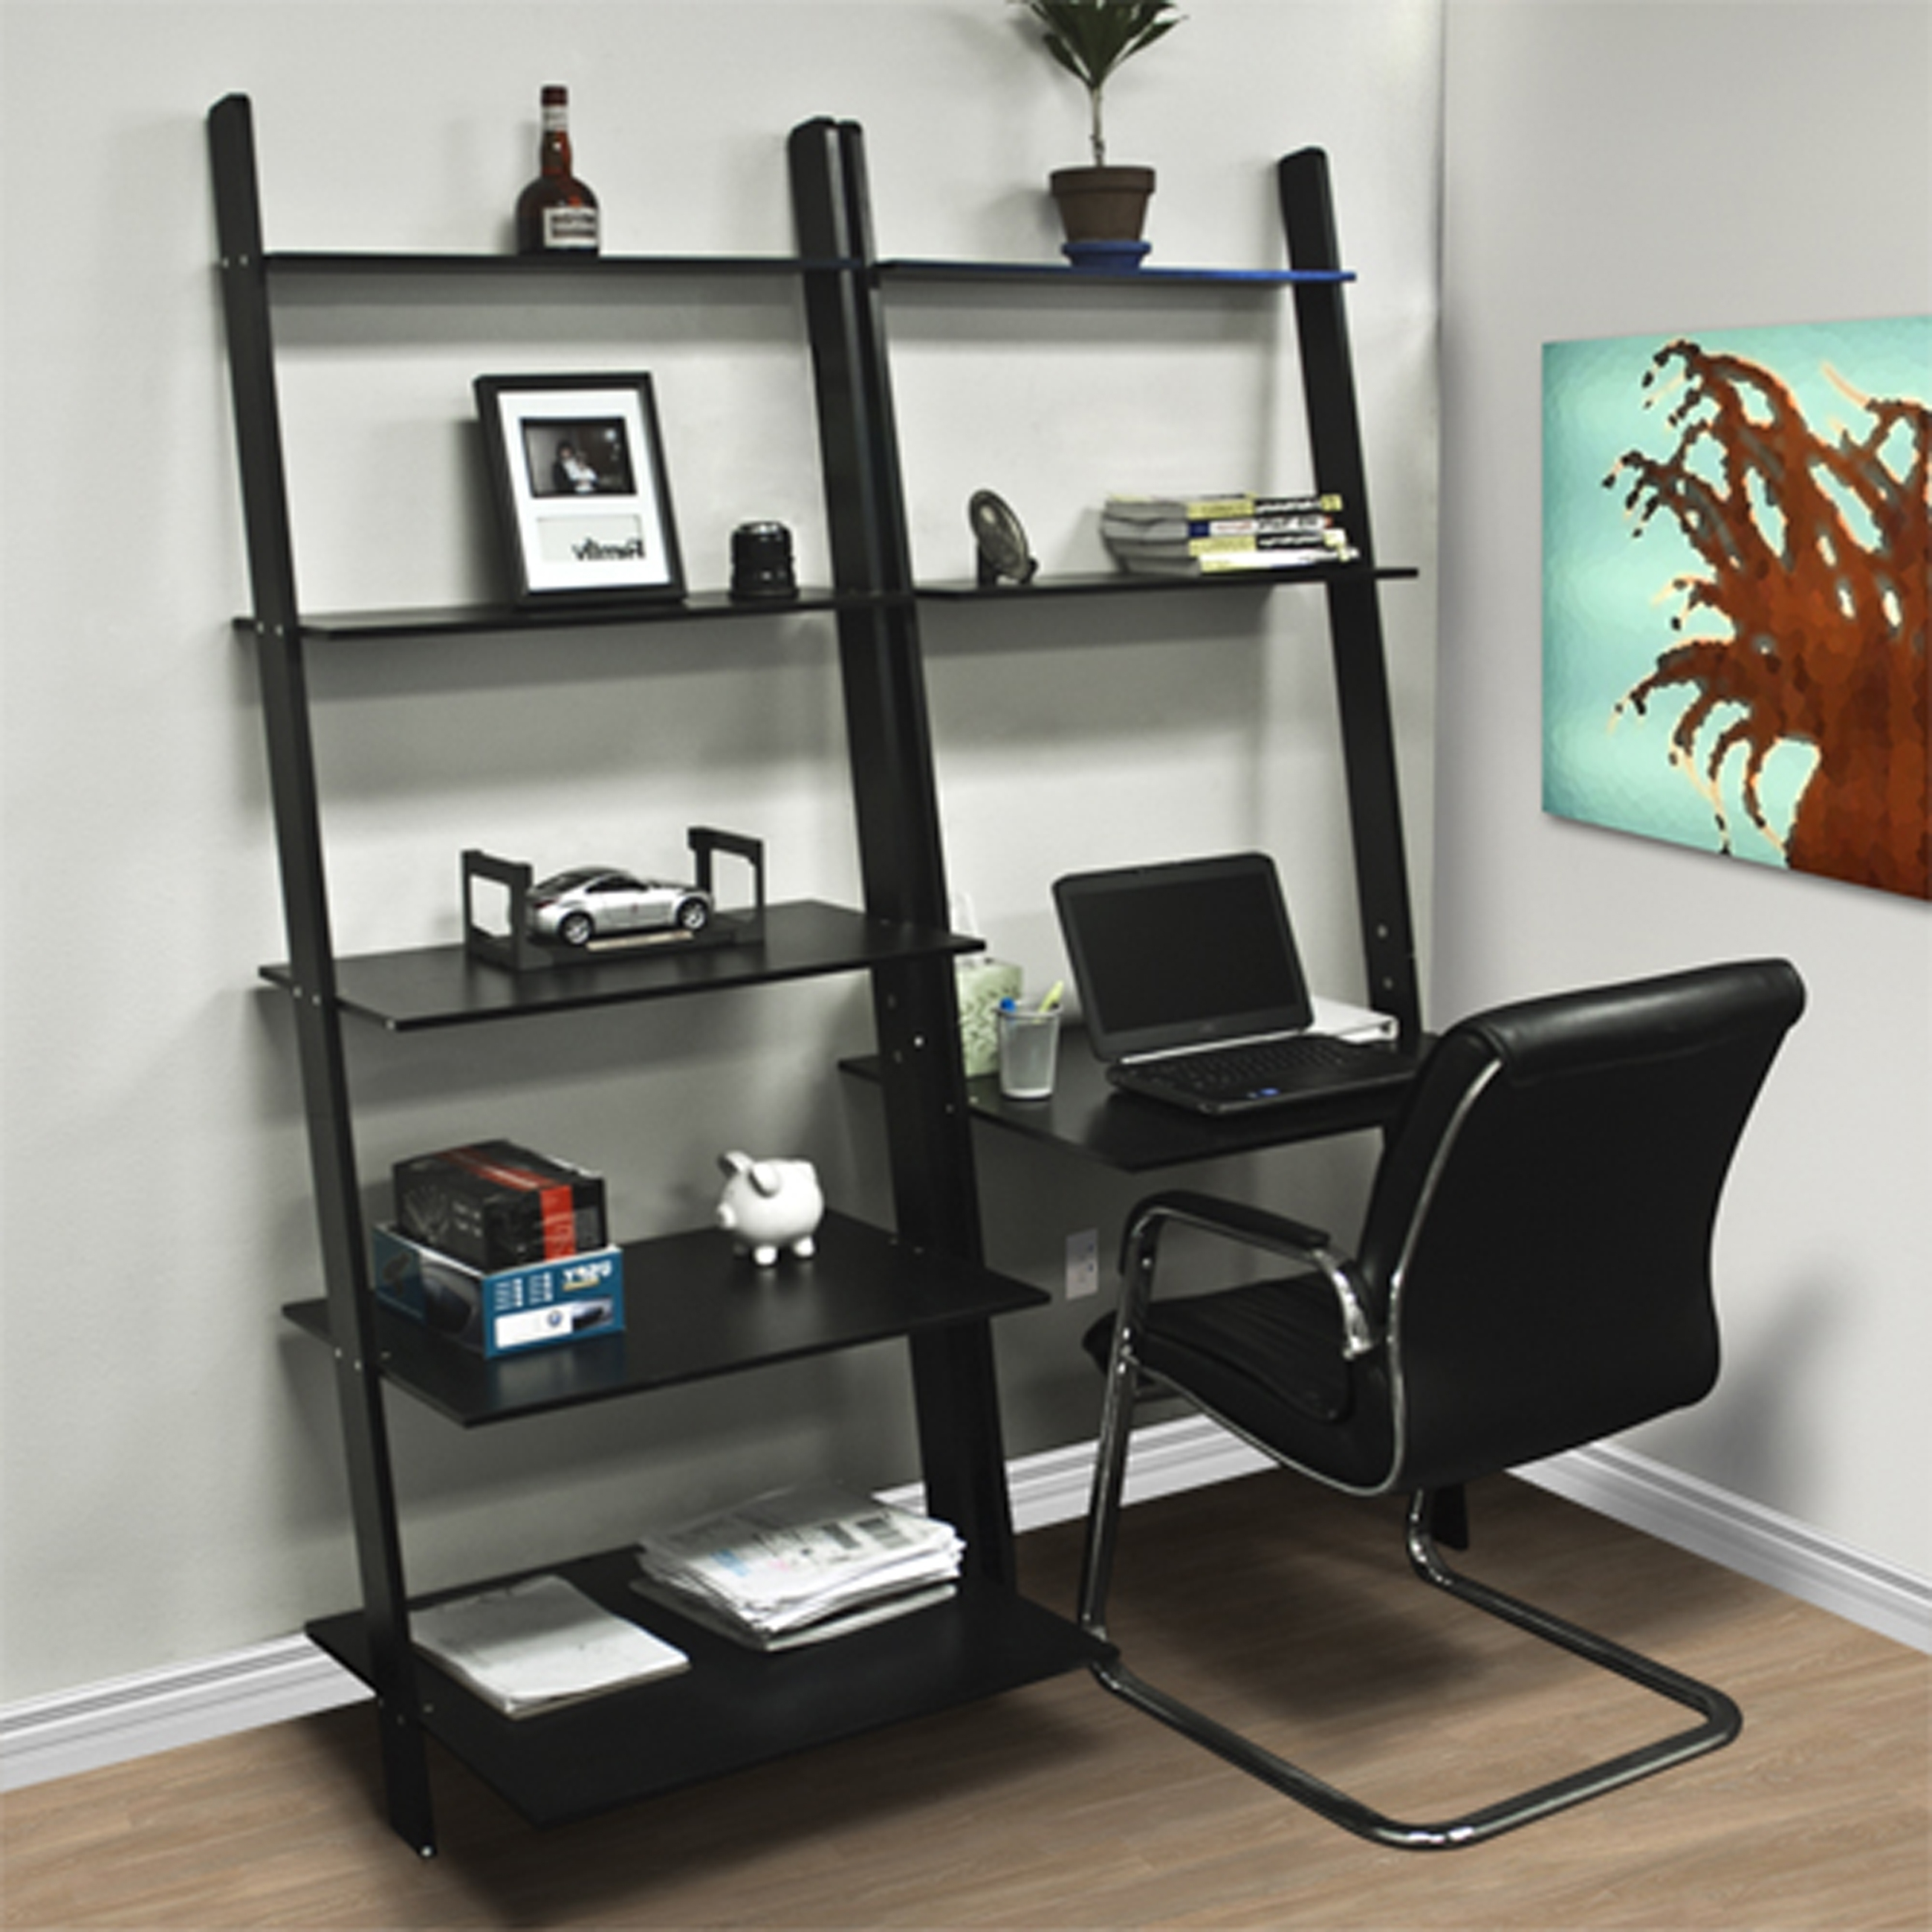 desk bookshelf storage bookcases shelf reception study small l wall shaped and bookcase with white unit office shelving hutch ladder computer furniture